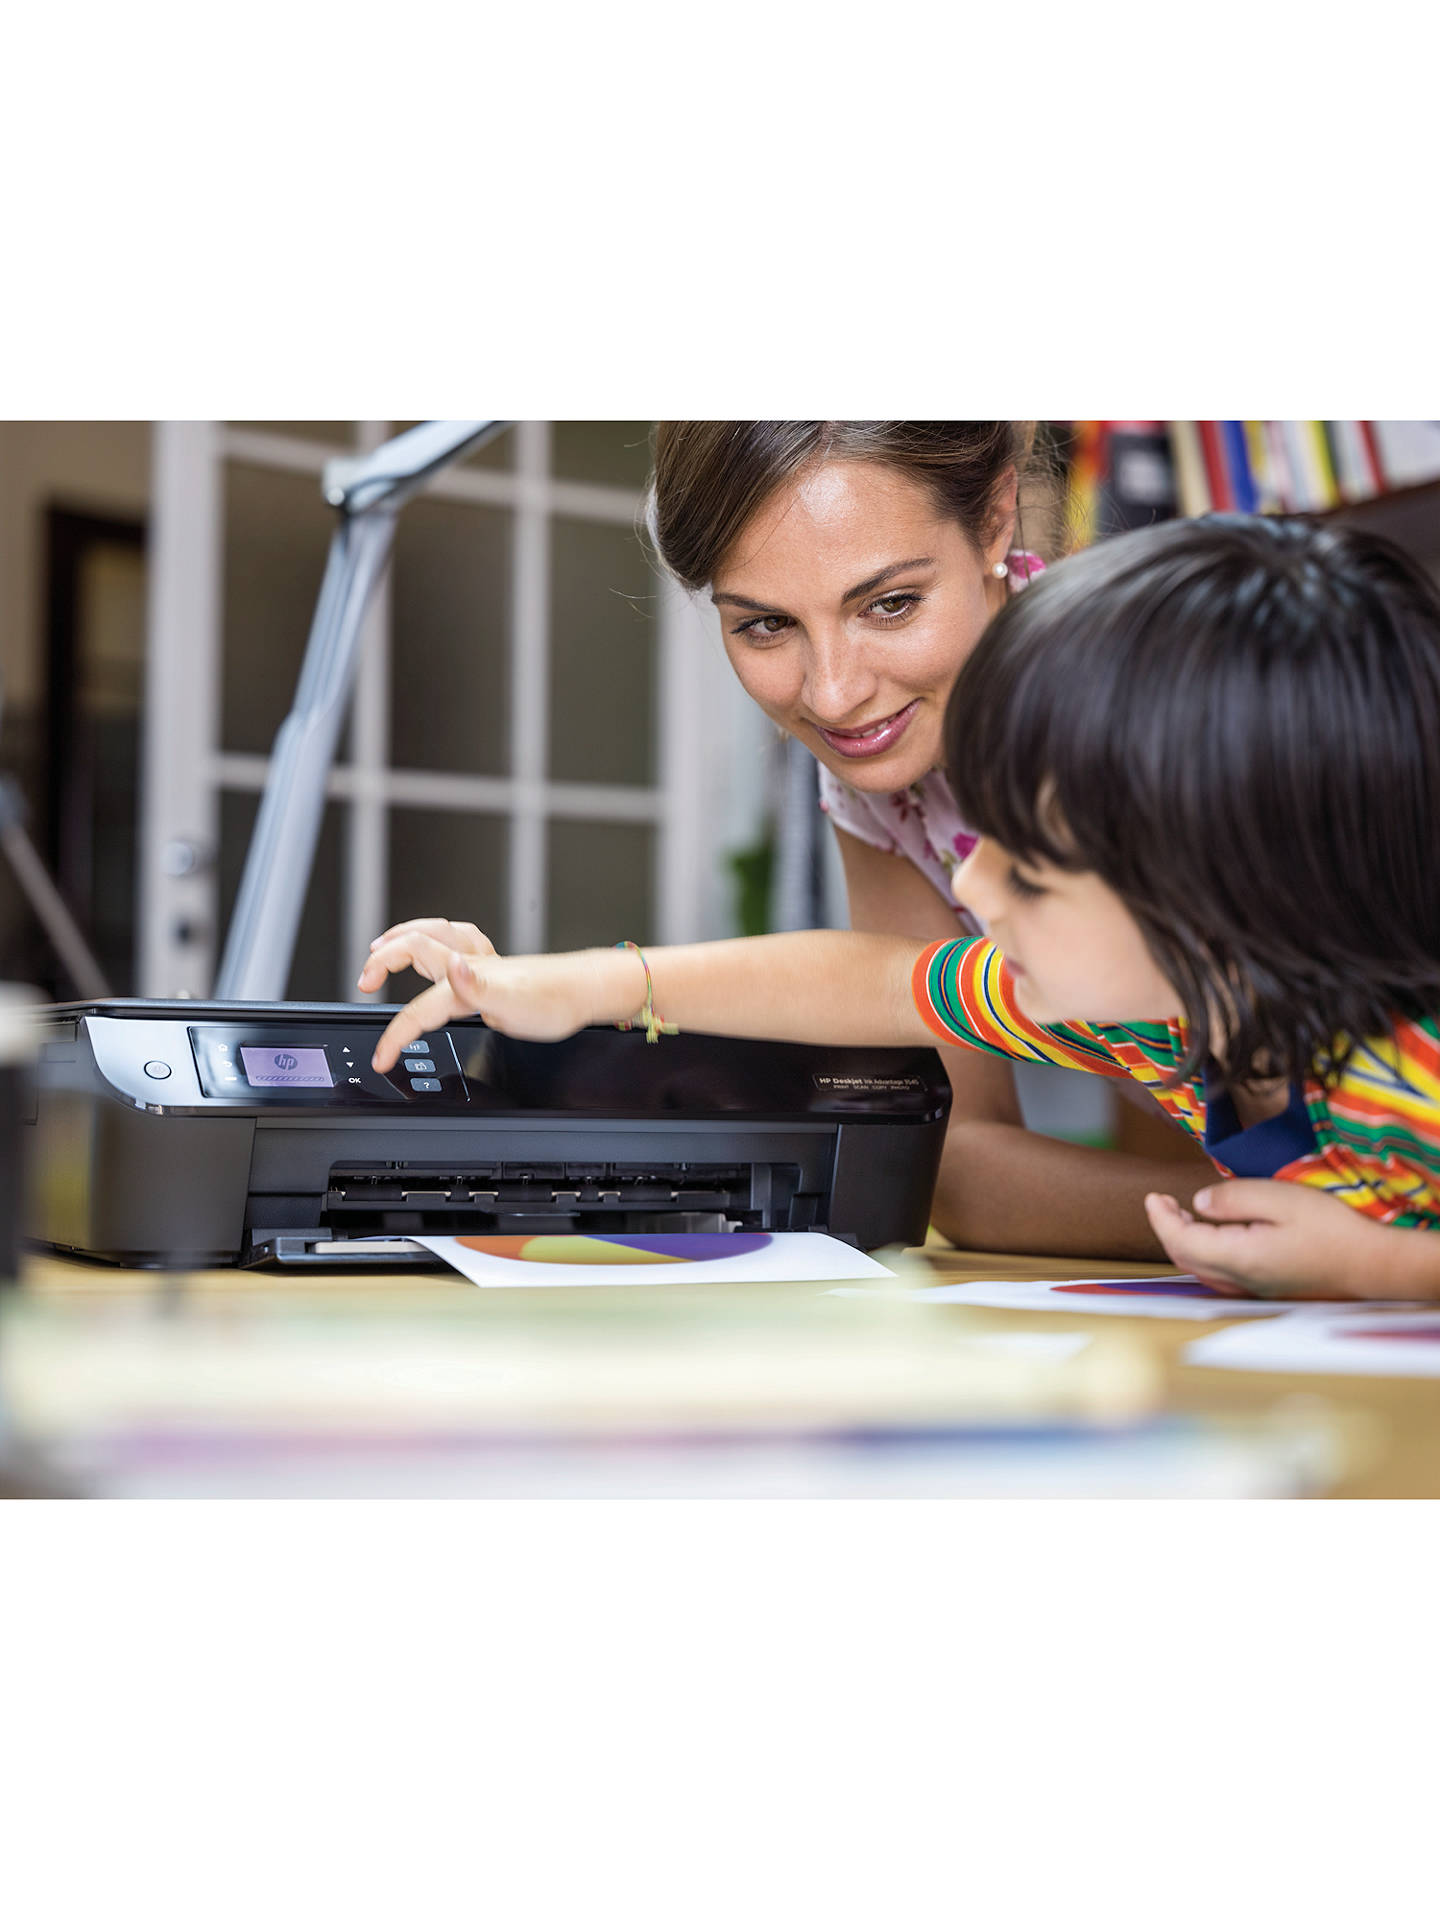 HP ENVY 4500 All-in-One Wireless Printer, HP Instant Ink